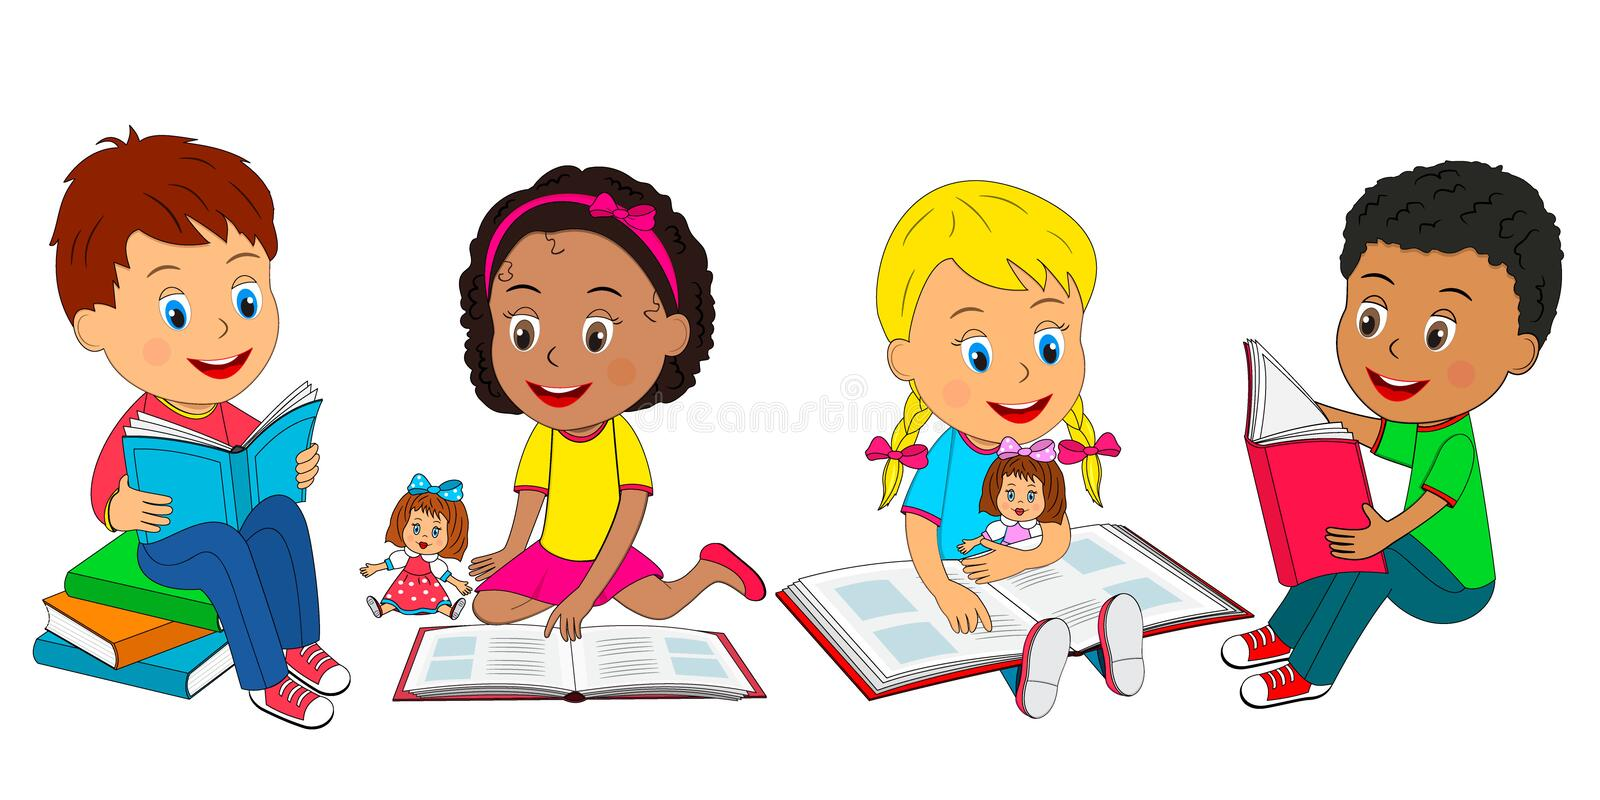 Image result for reading books clipart